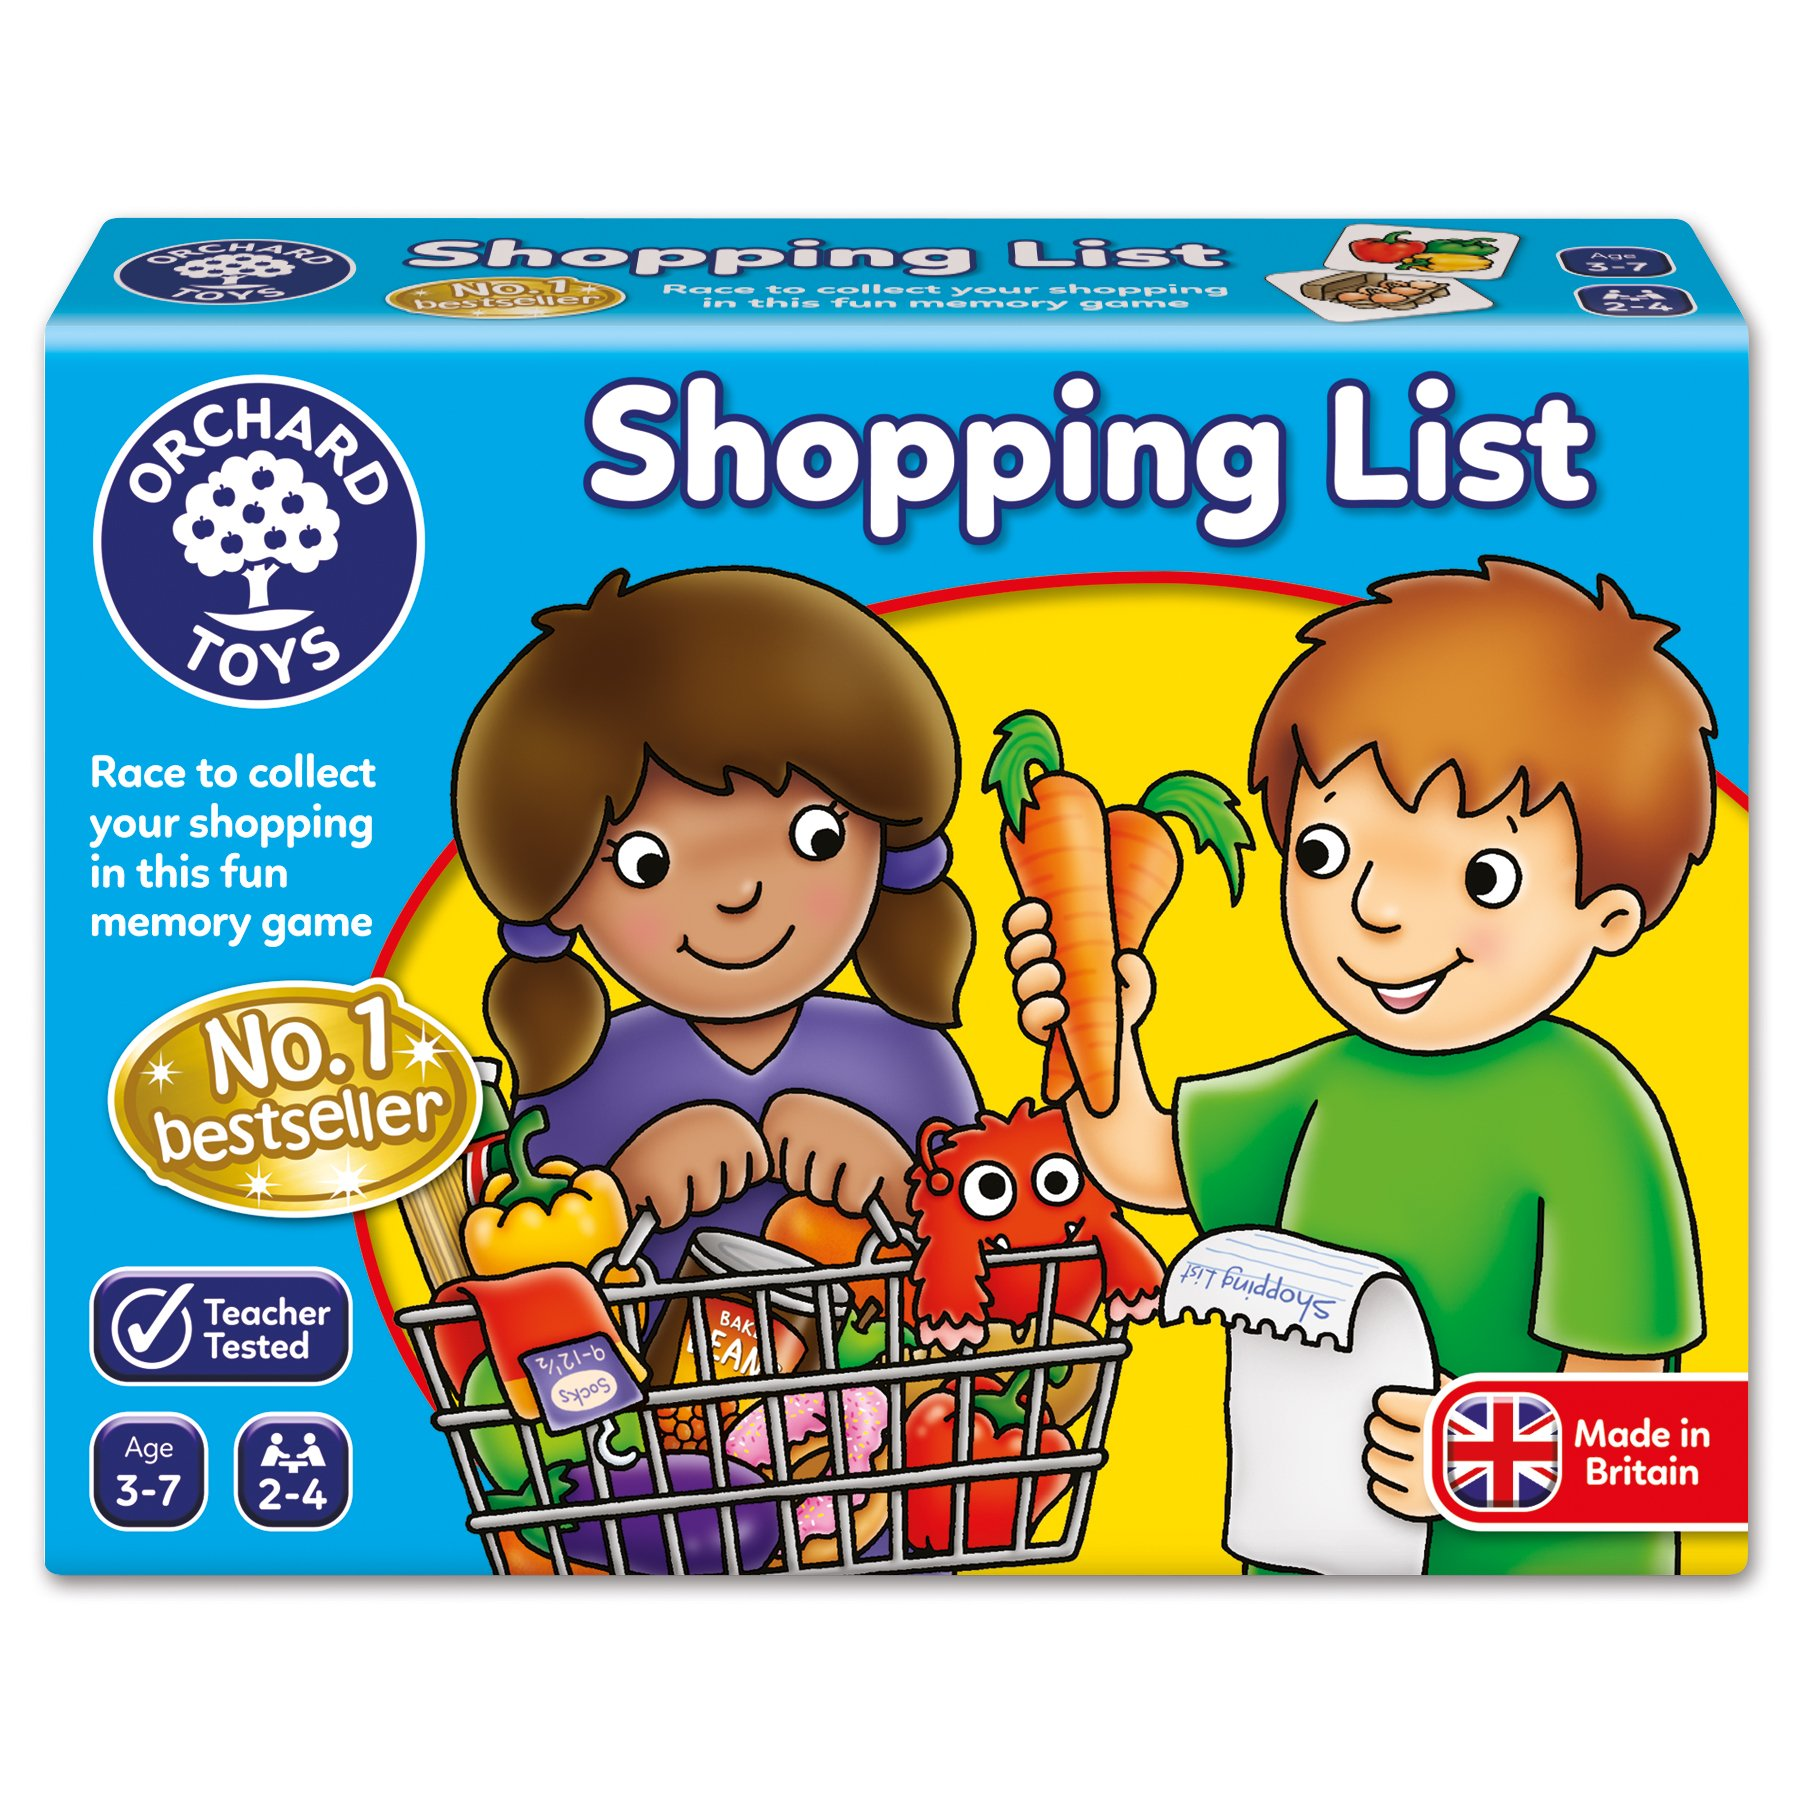 orchard-shopping-list